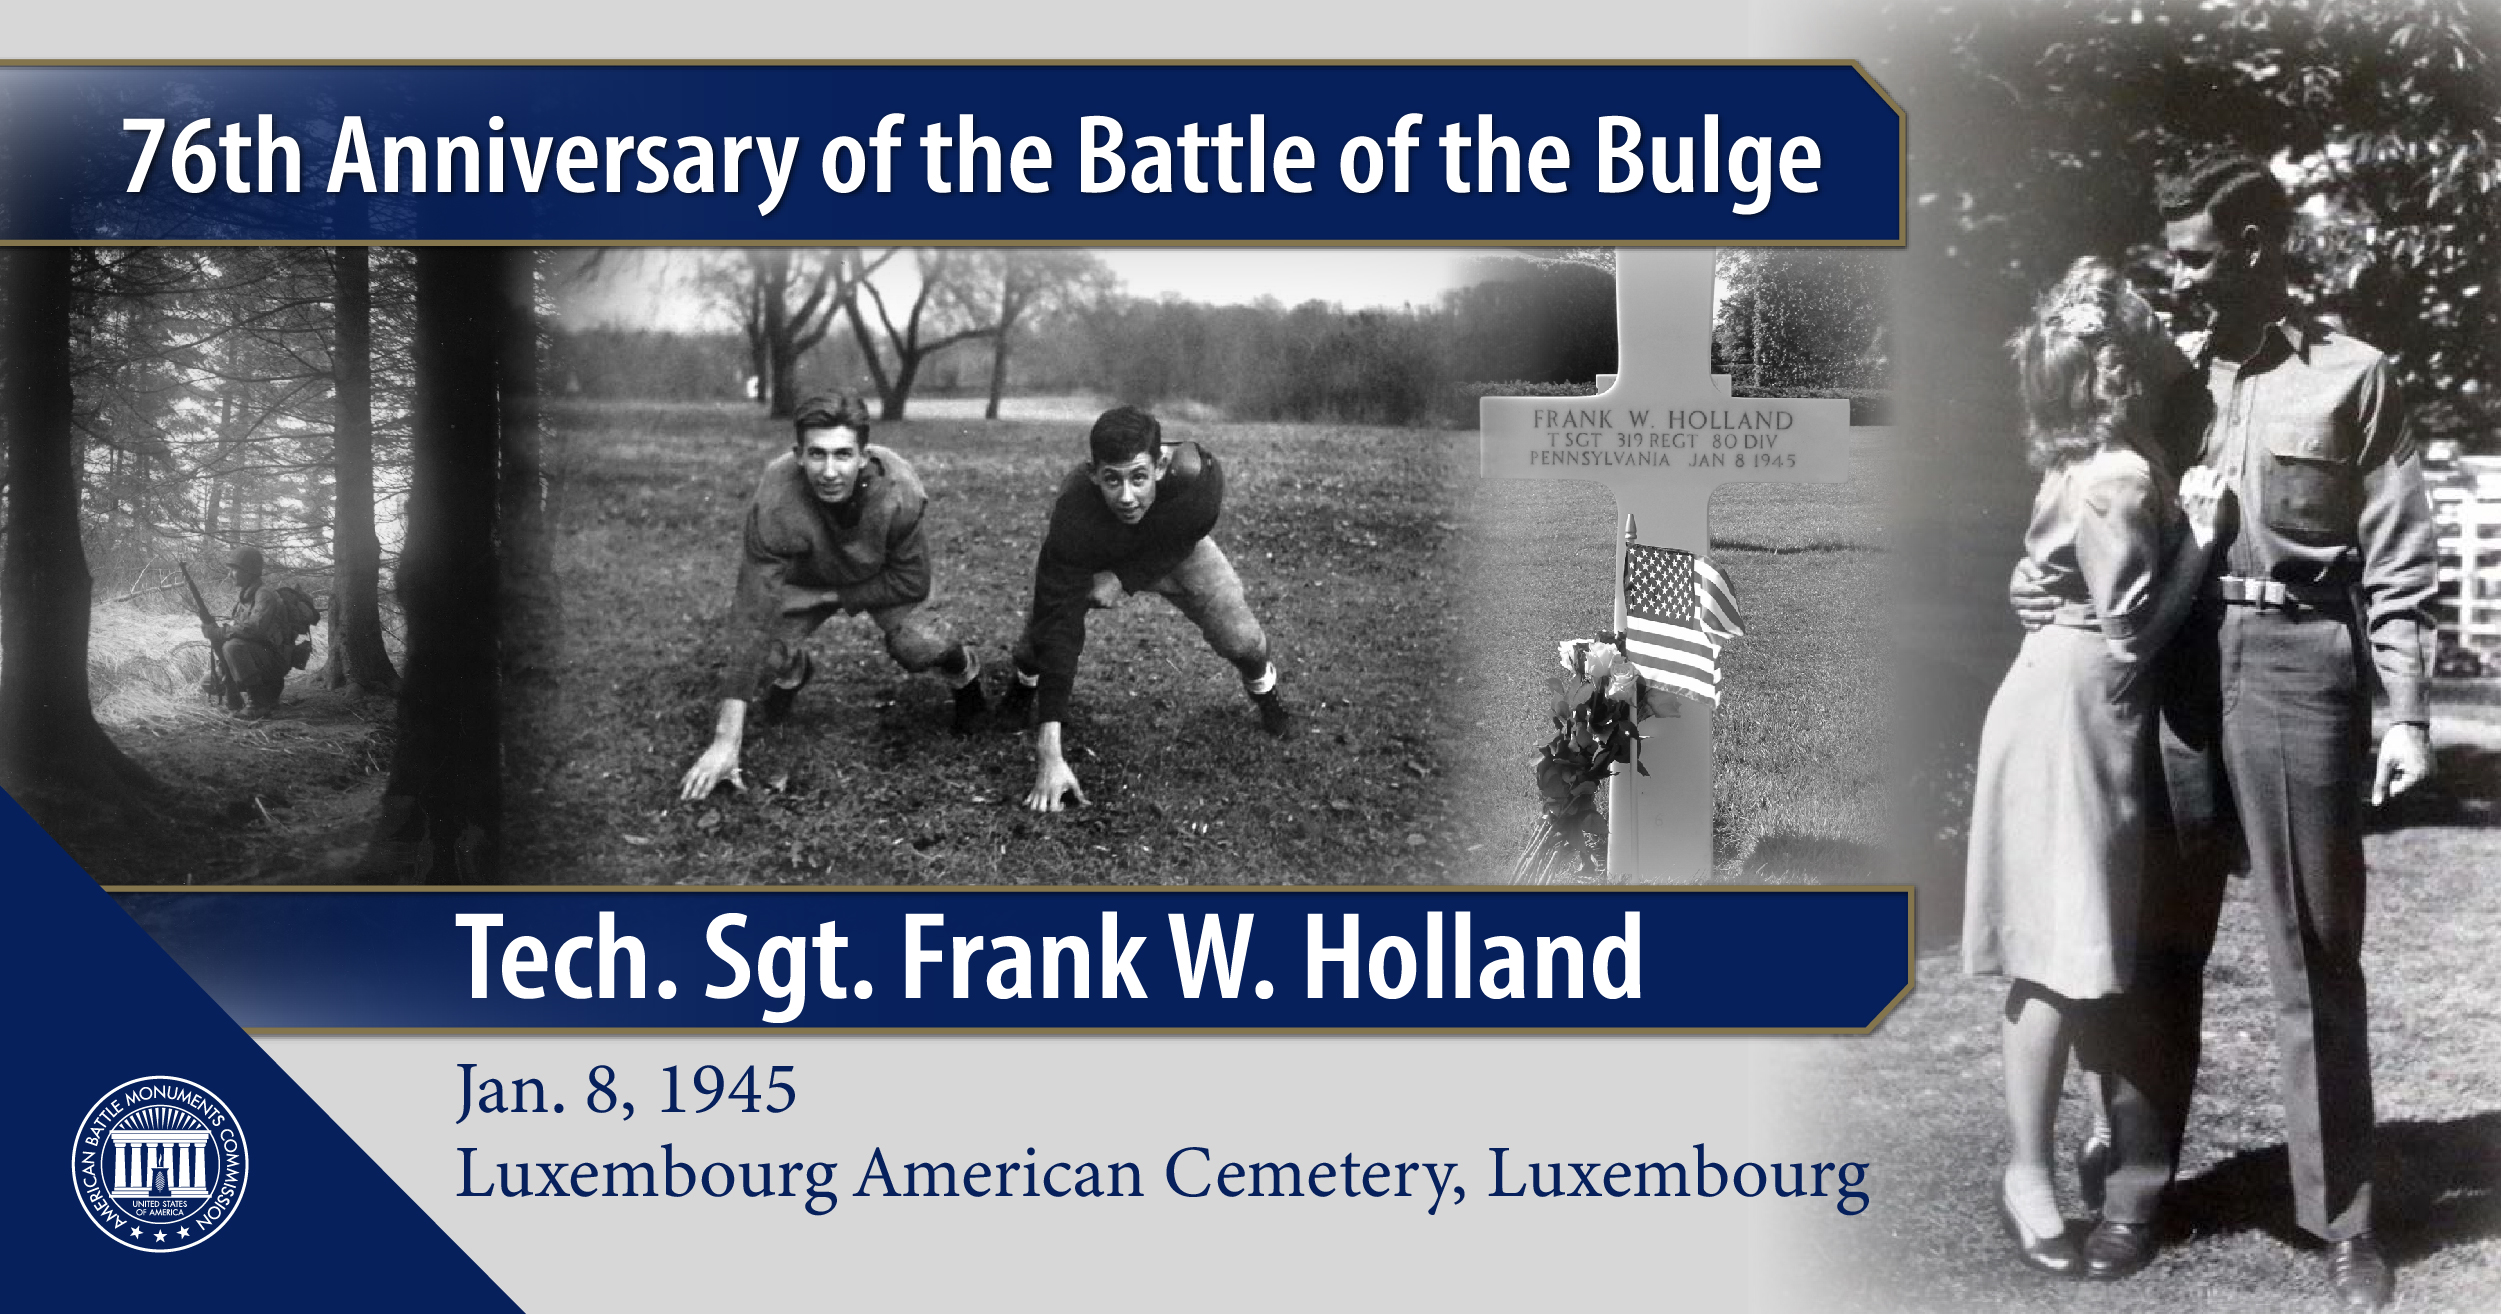 Tech. Sgt. Frank W. Holland, buried in Luxembourg American Cemetery